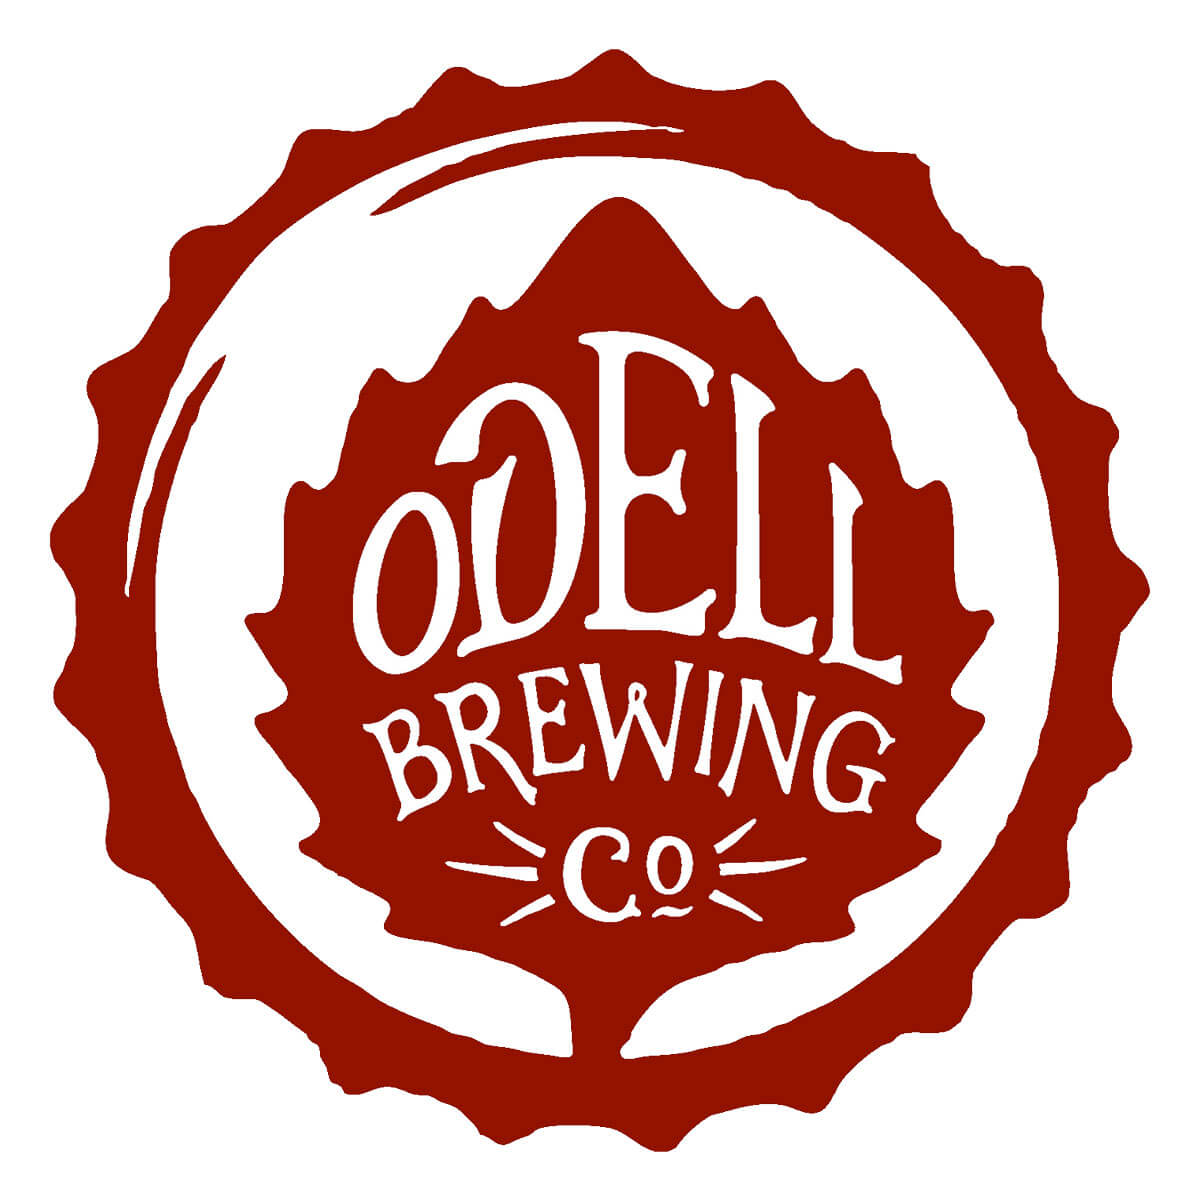 Odell Brewing Co Logo